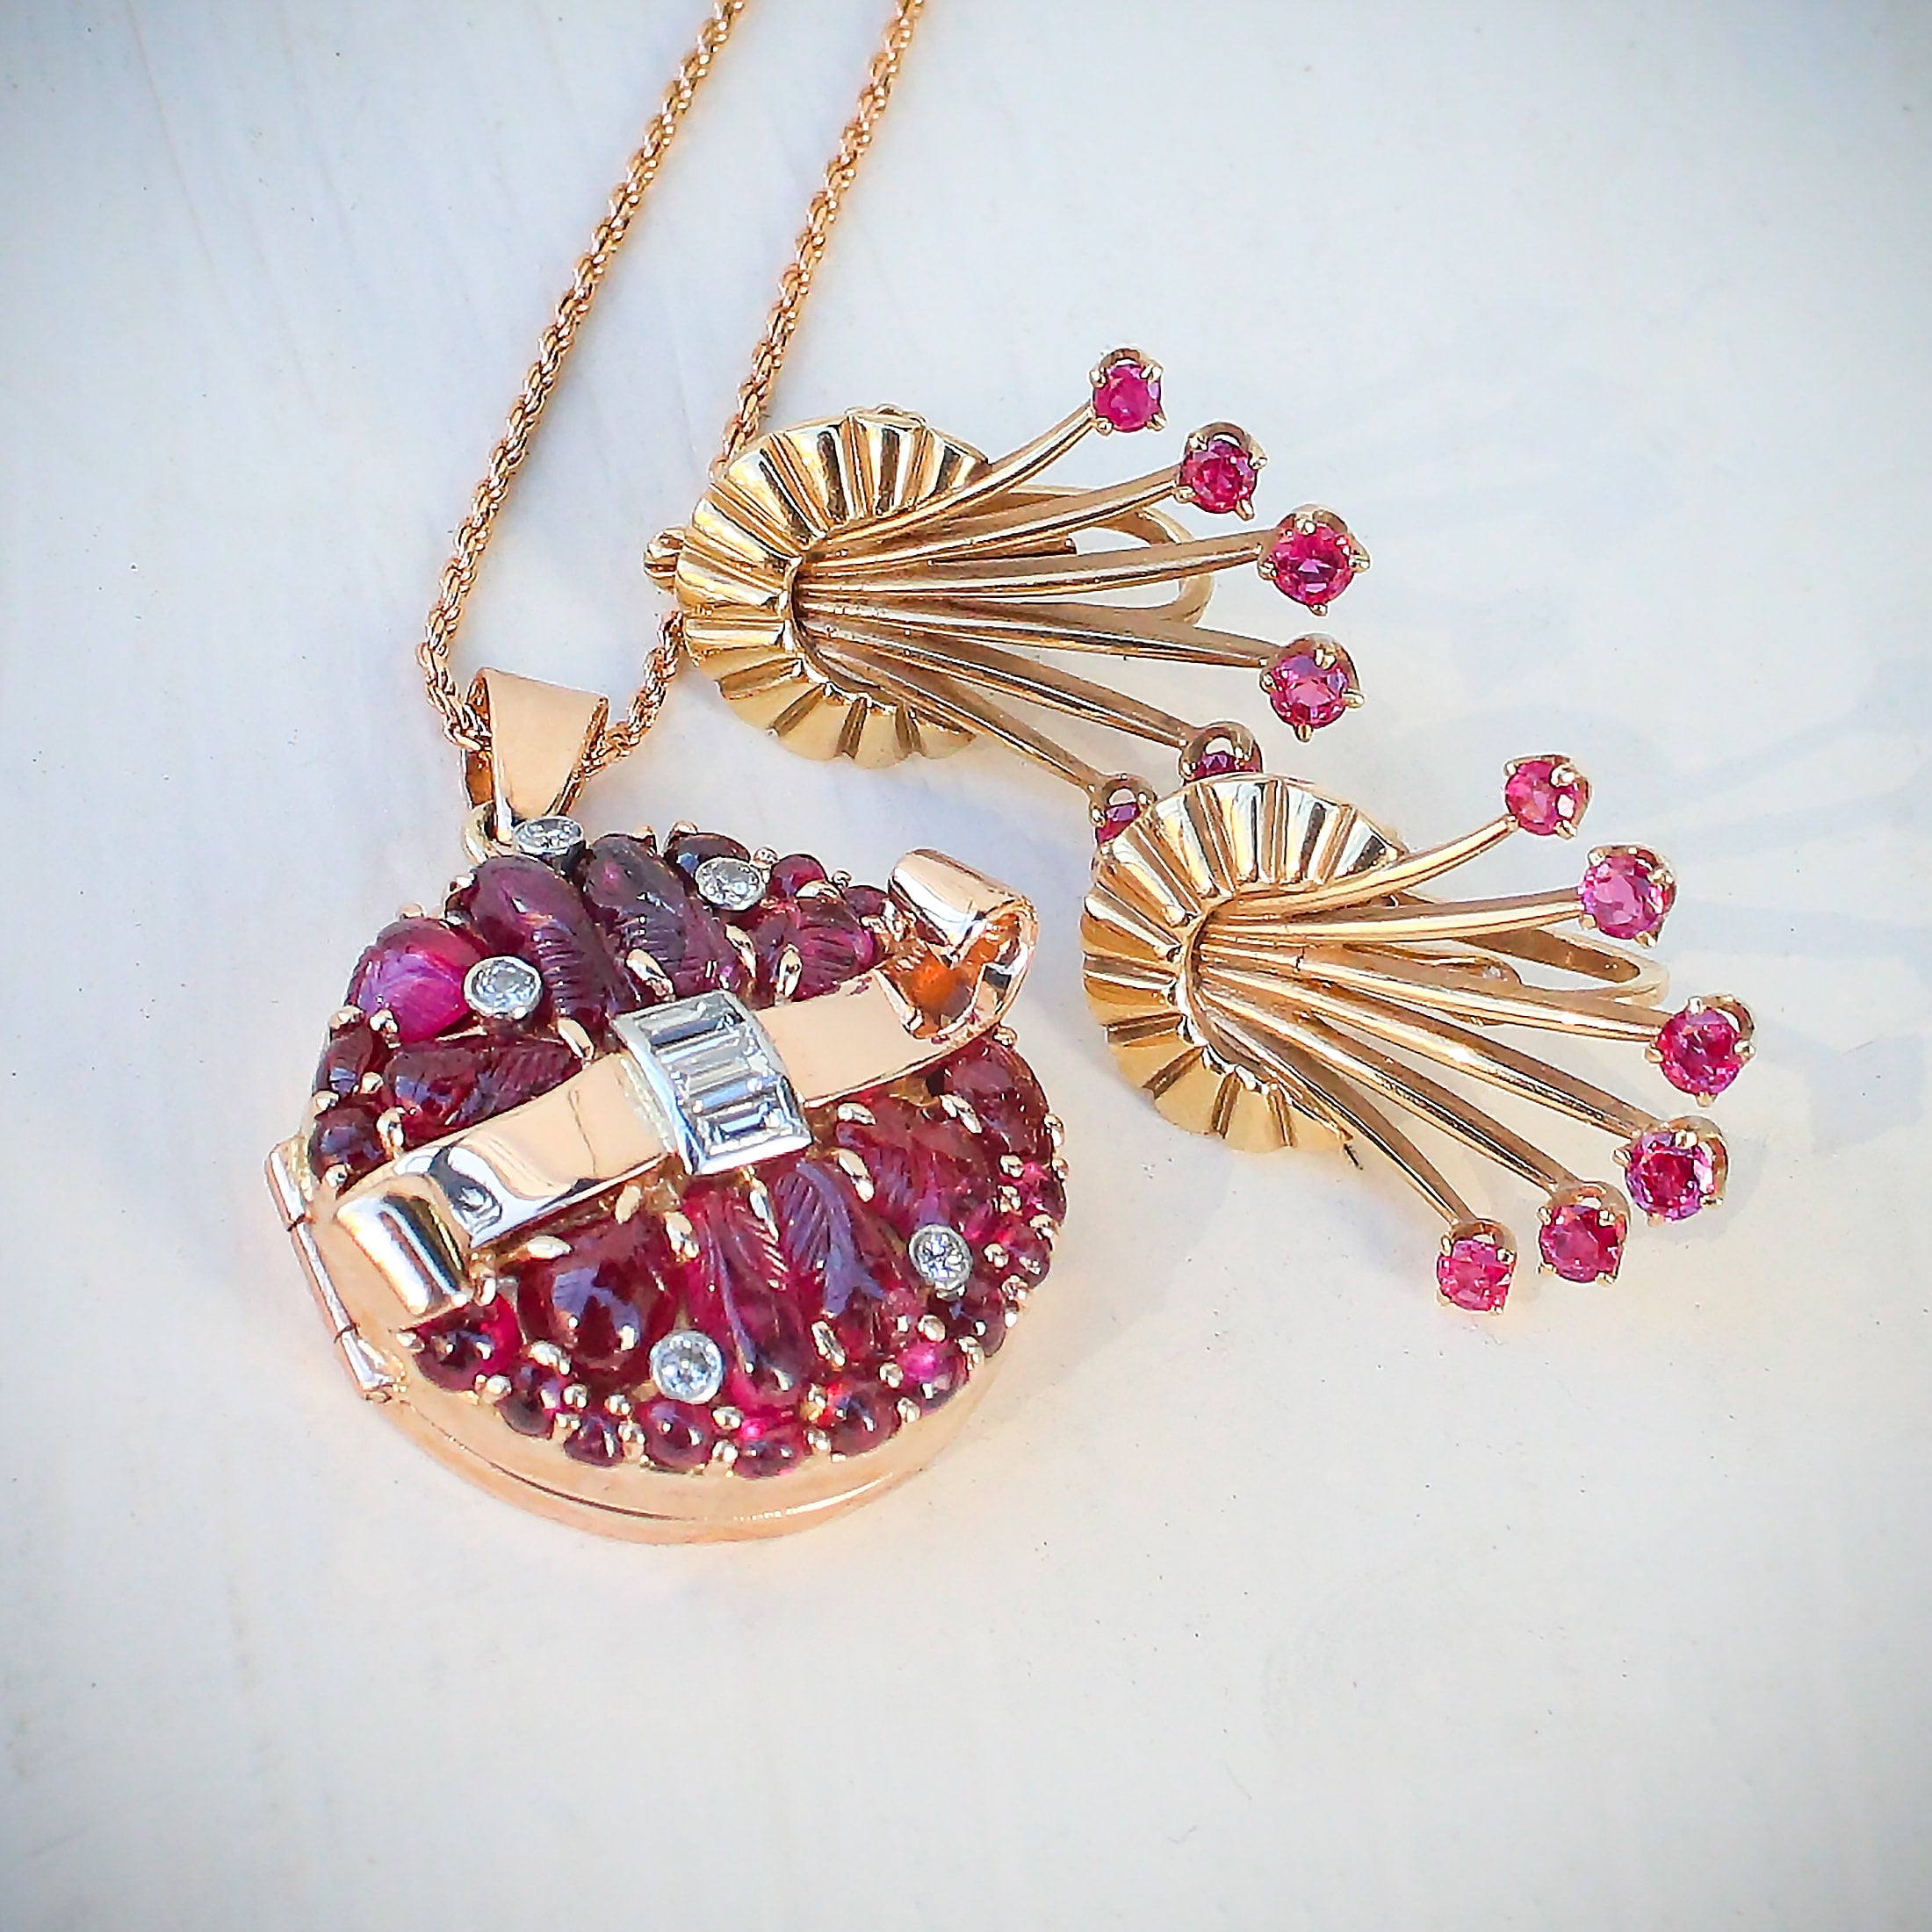 1940's retro rose gold ruby and diamond pendant earrings.